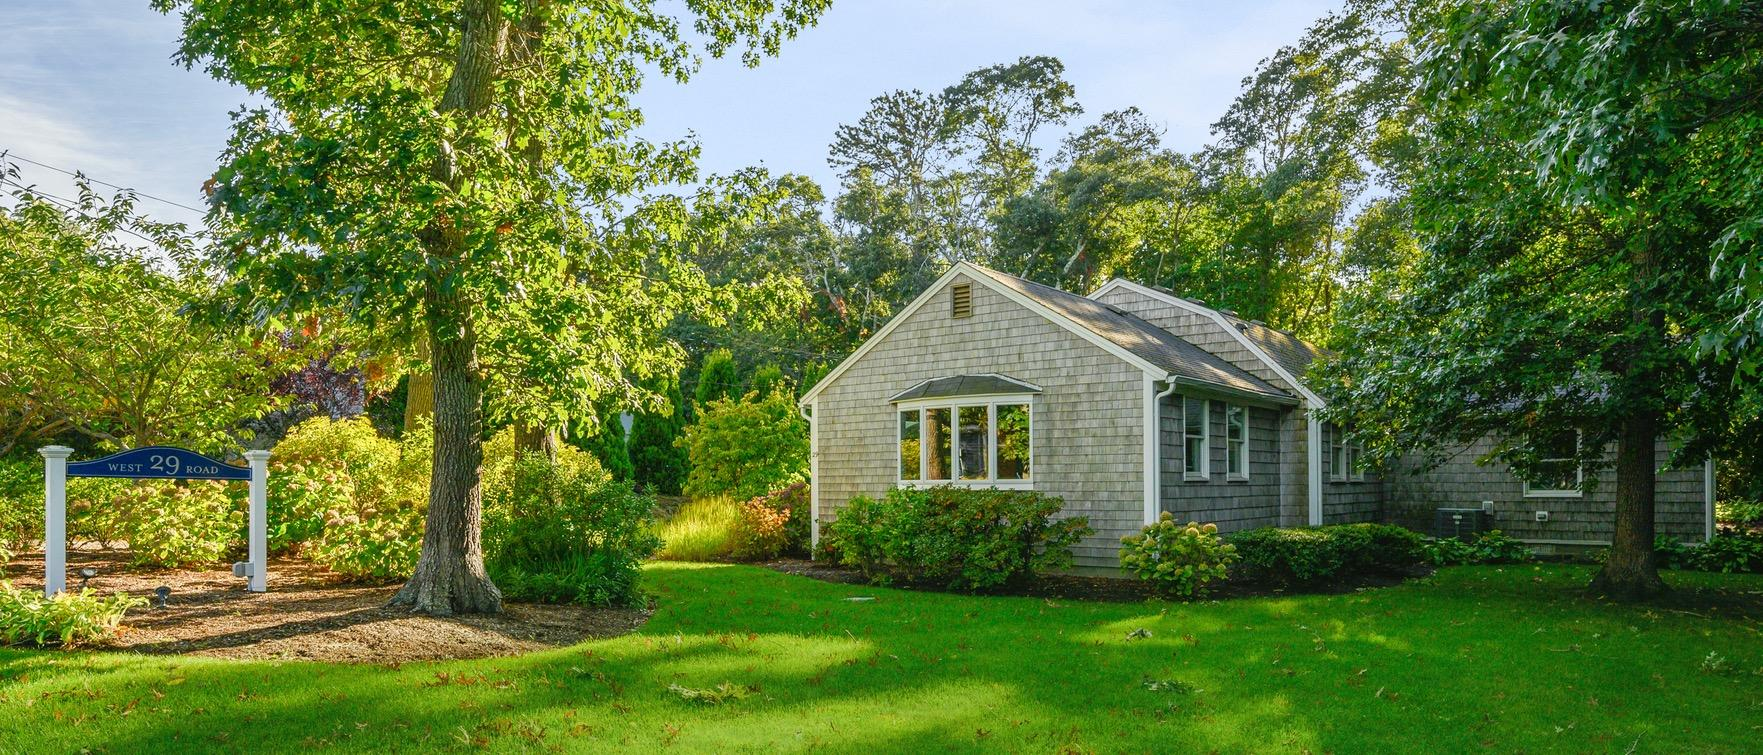 29 West Road, Orleans MA, 02653 sales details